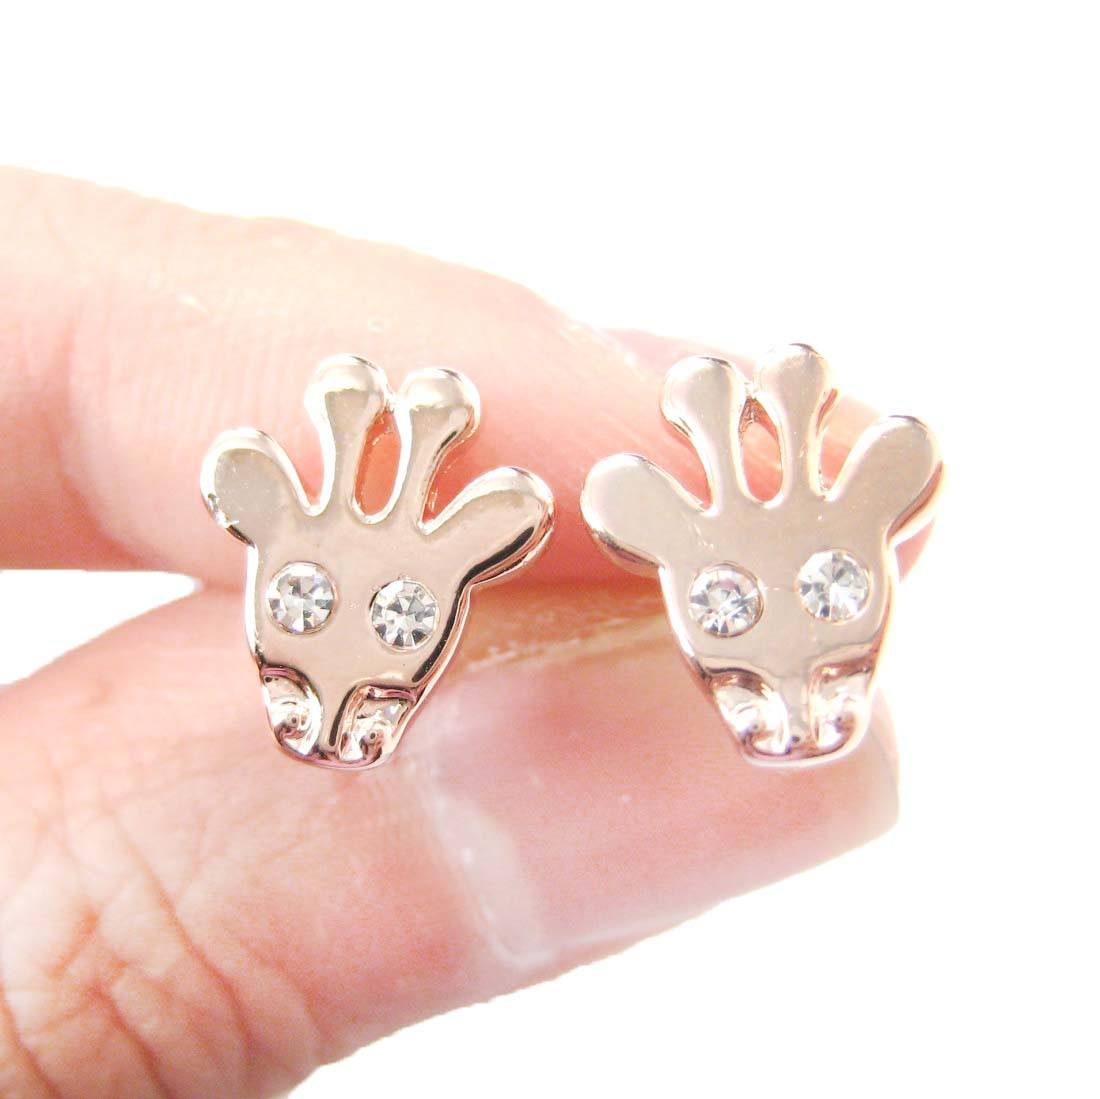 Giraffe Head Shaped Stud Earrings with Rhinestone Eyes in Rose Gold